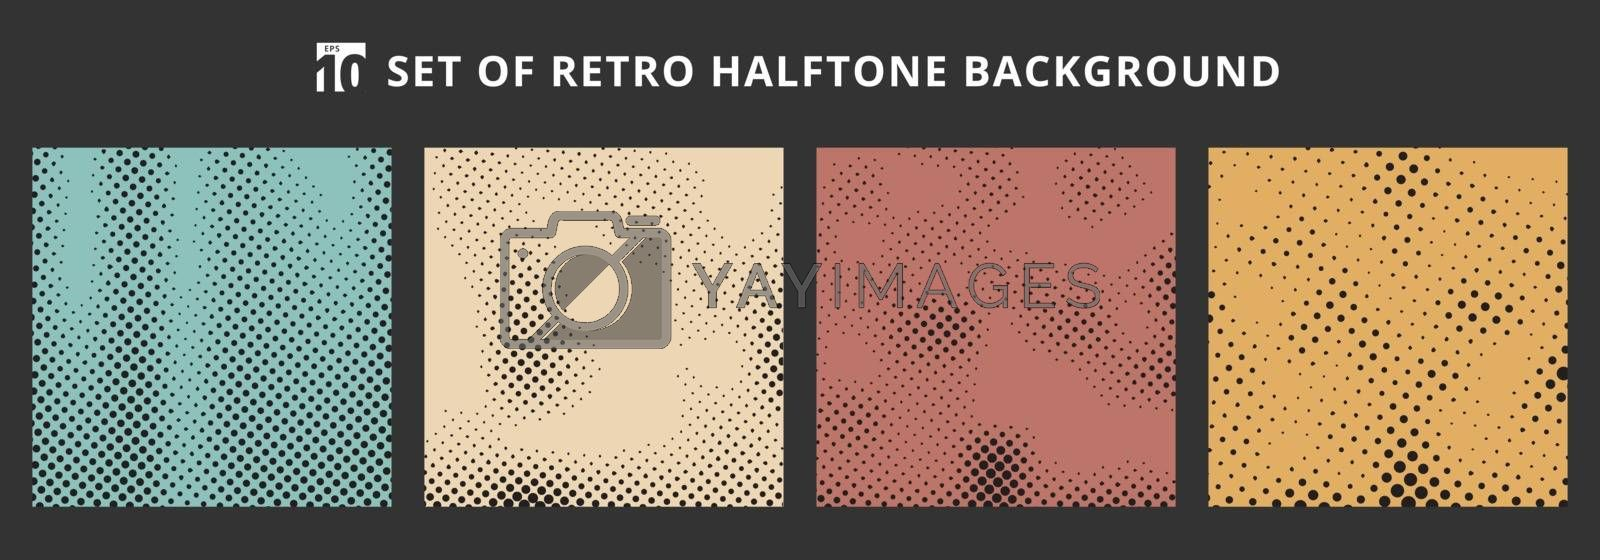 Set of halftone retro backgrounds. Abstract dotted pattern grunge textures. Vector illustration